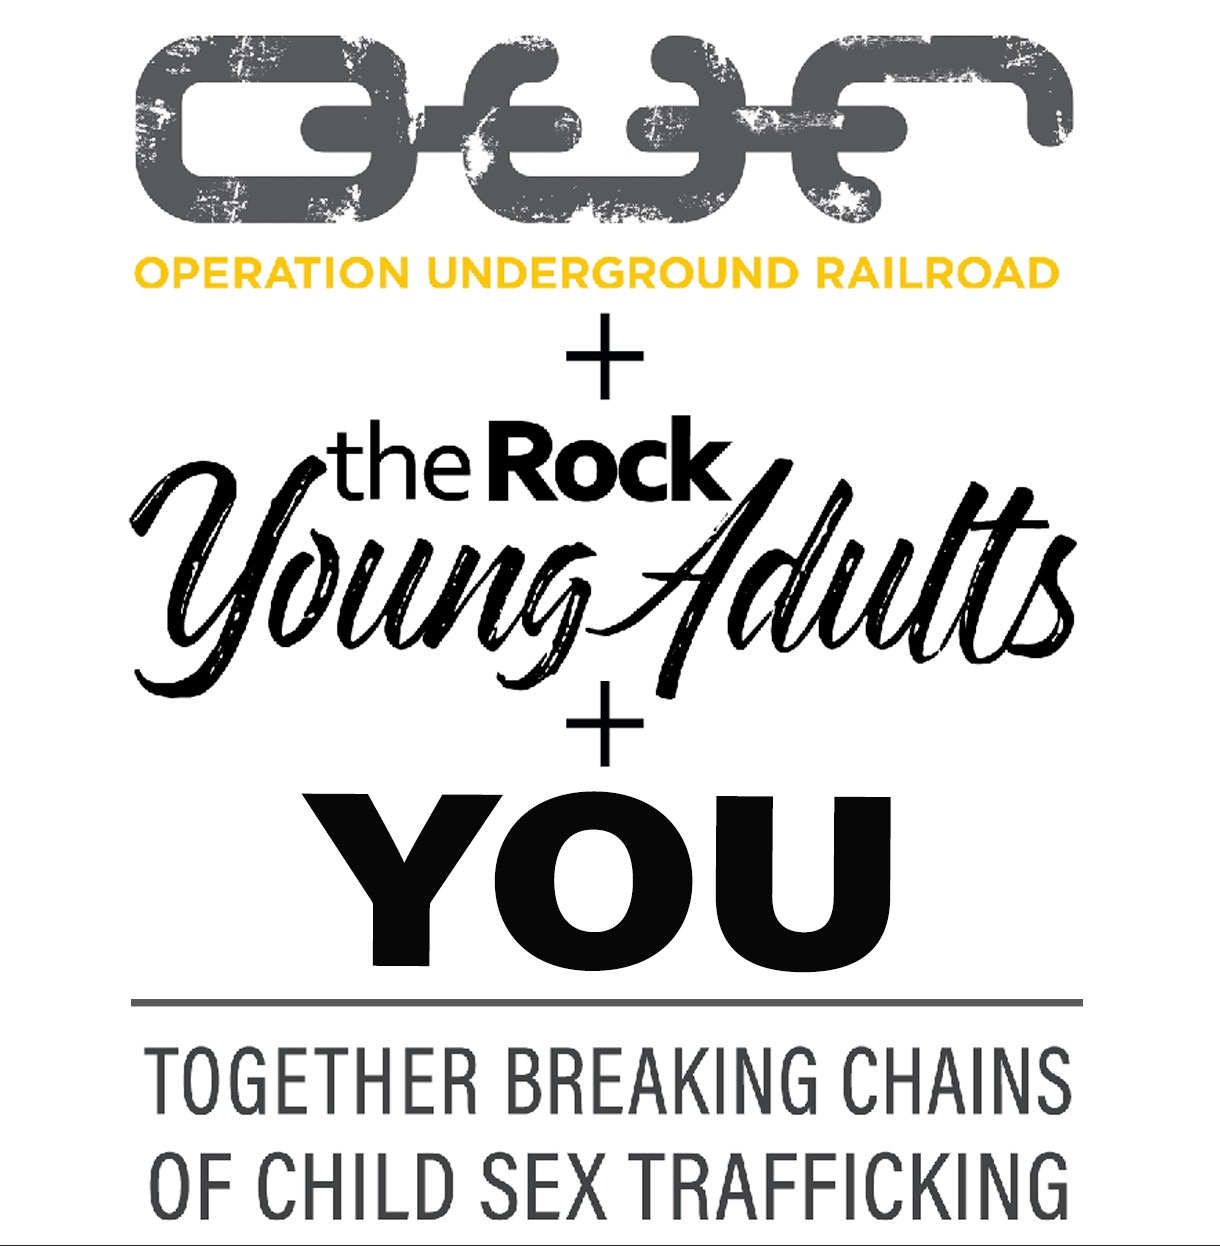 The Rock Young Adults Campaign for Kids